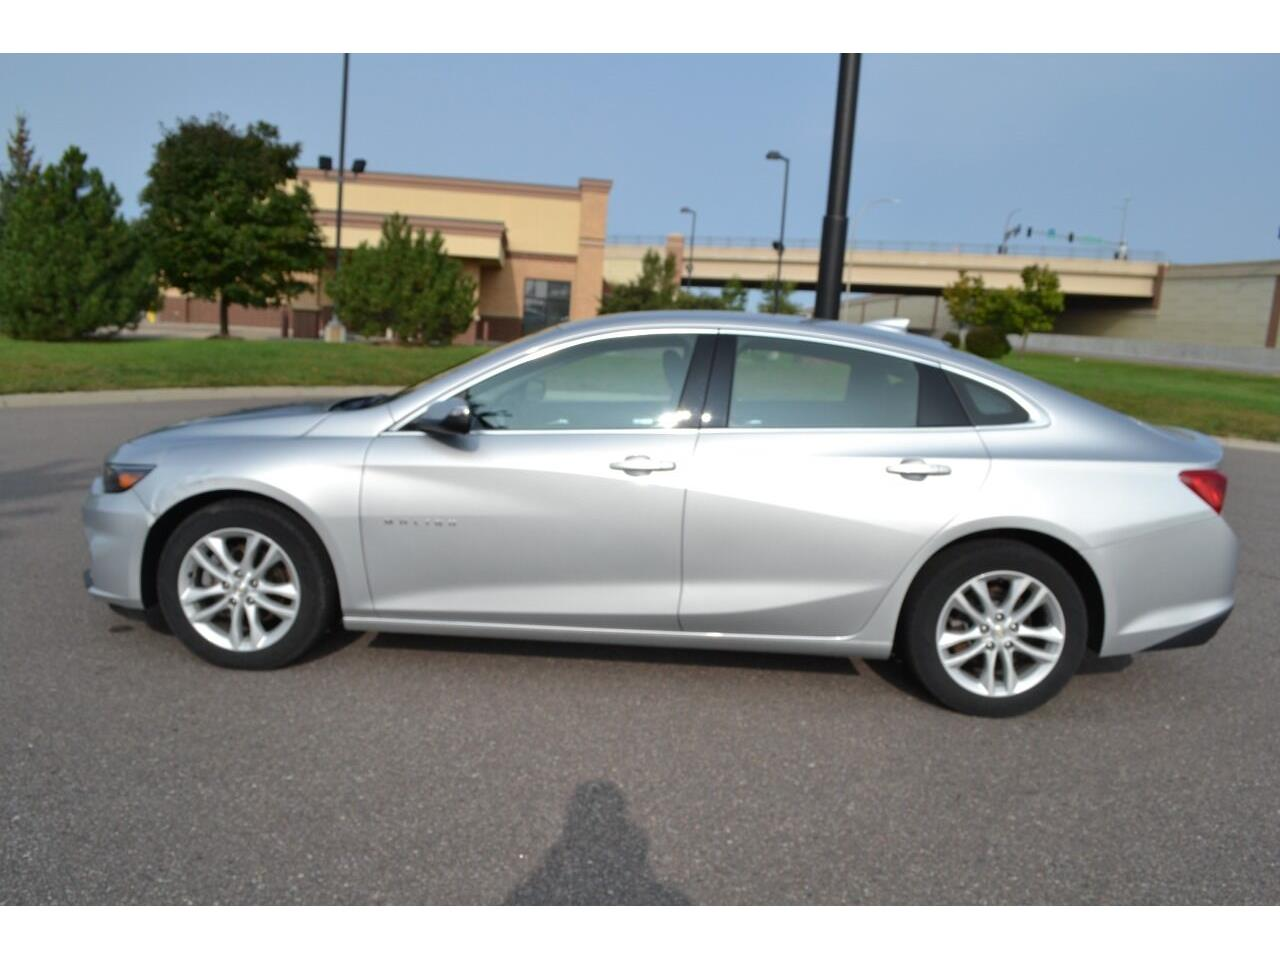 2017 Chevrolet Malibu (CC-1391739) for sale in Ramsey, Minnesota